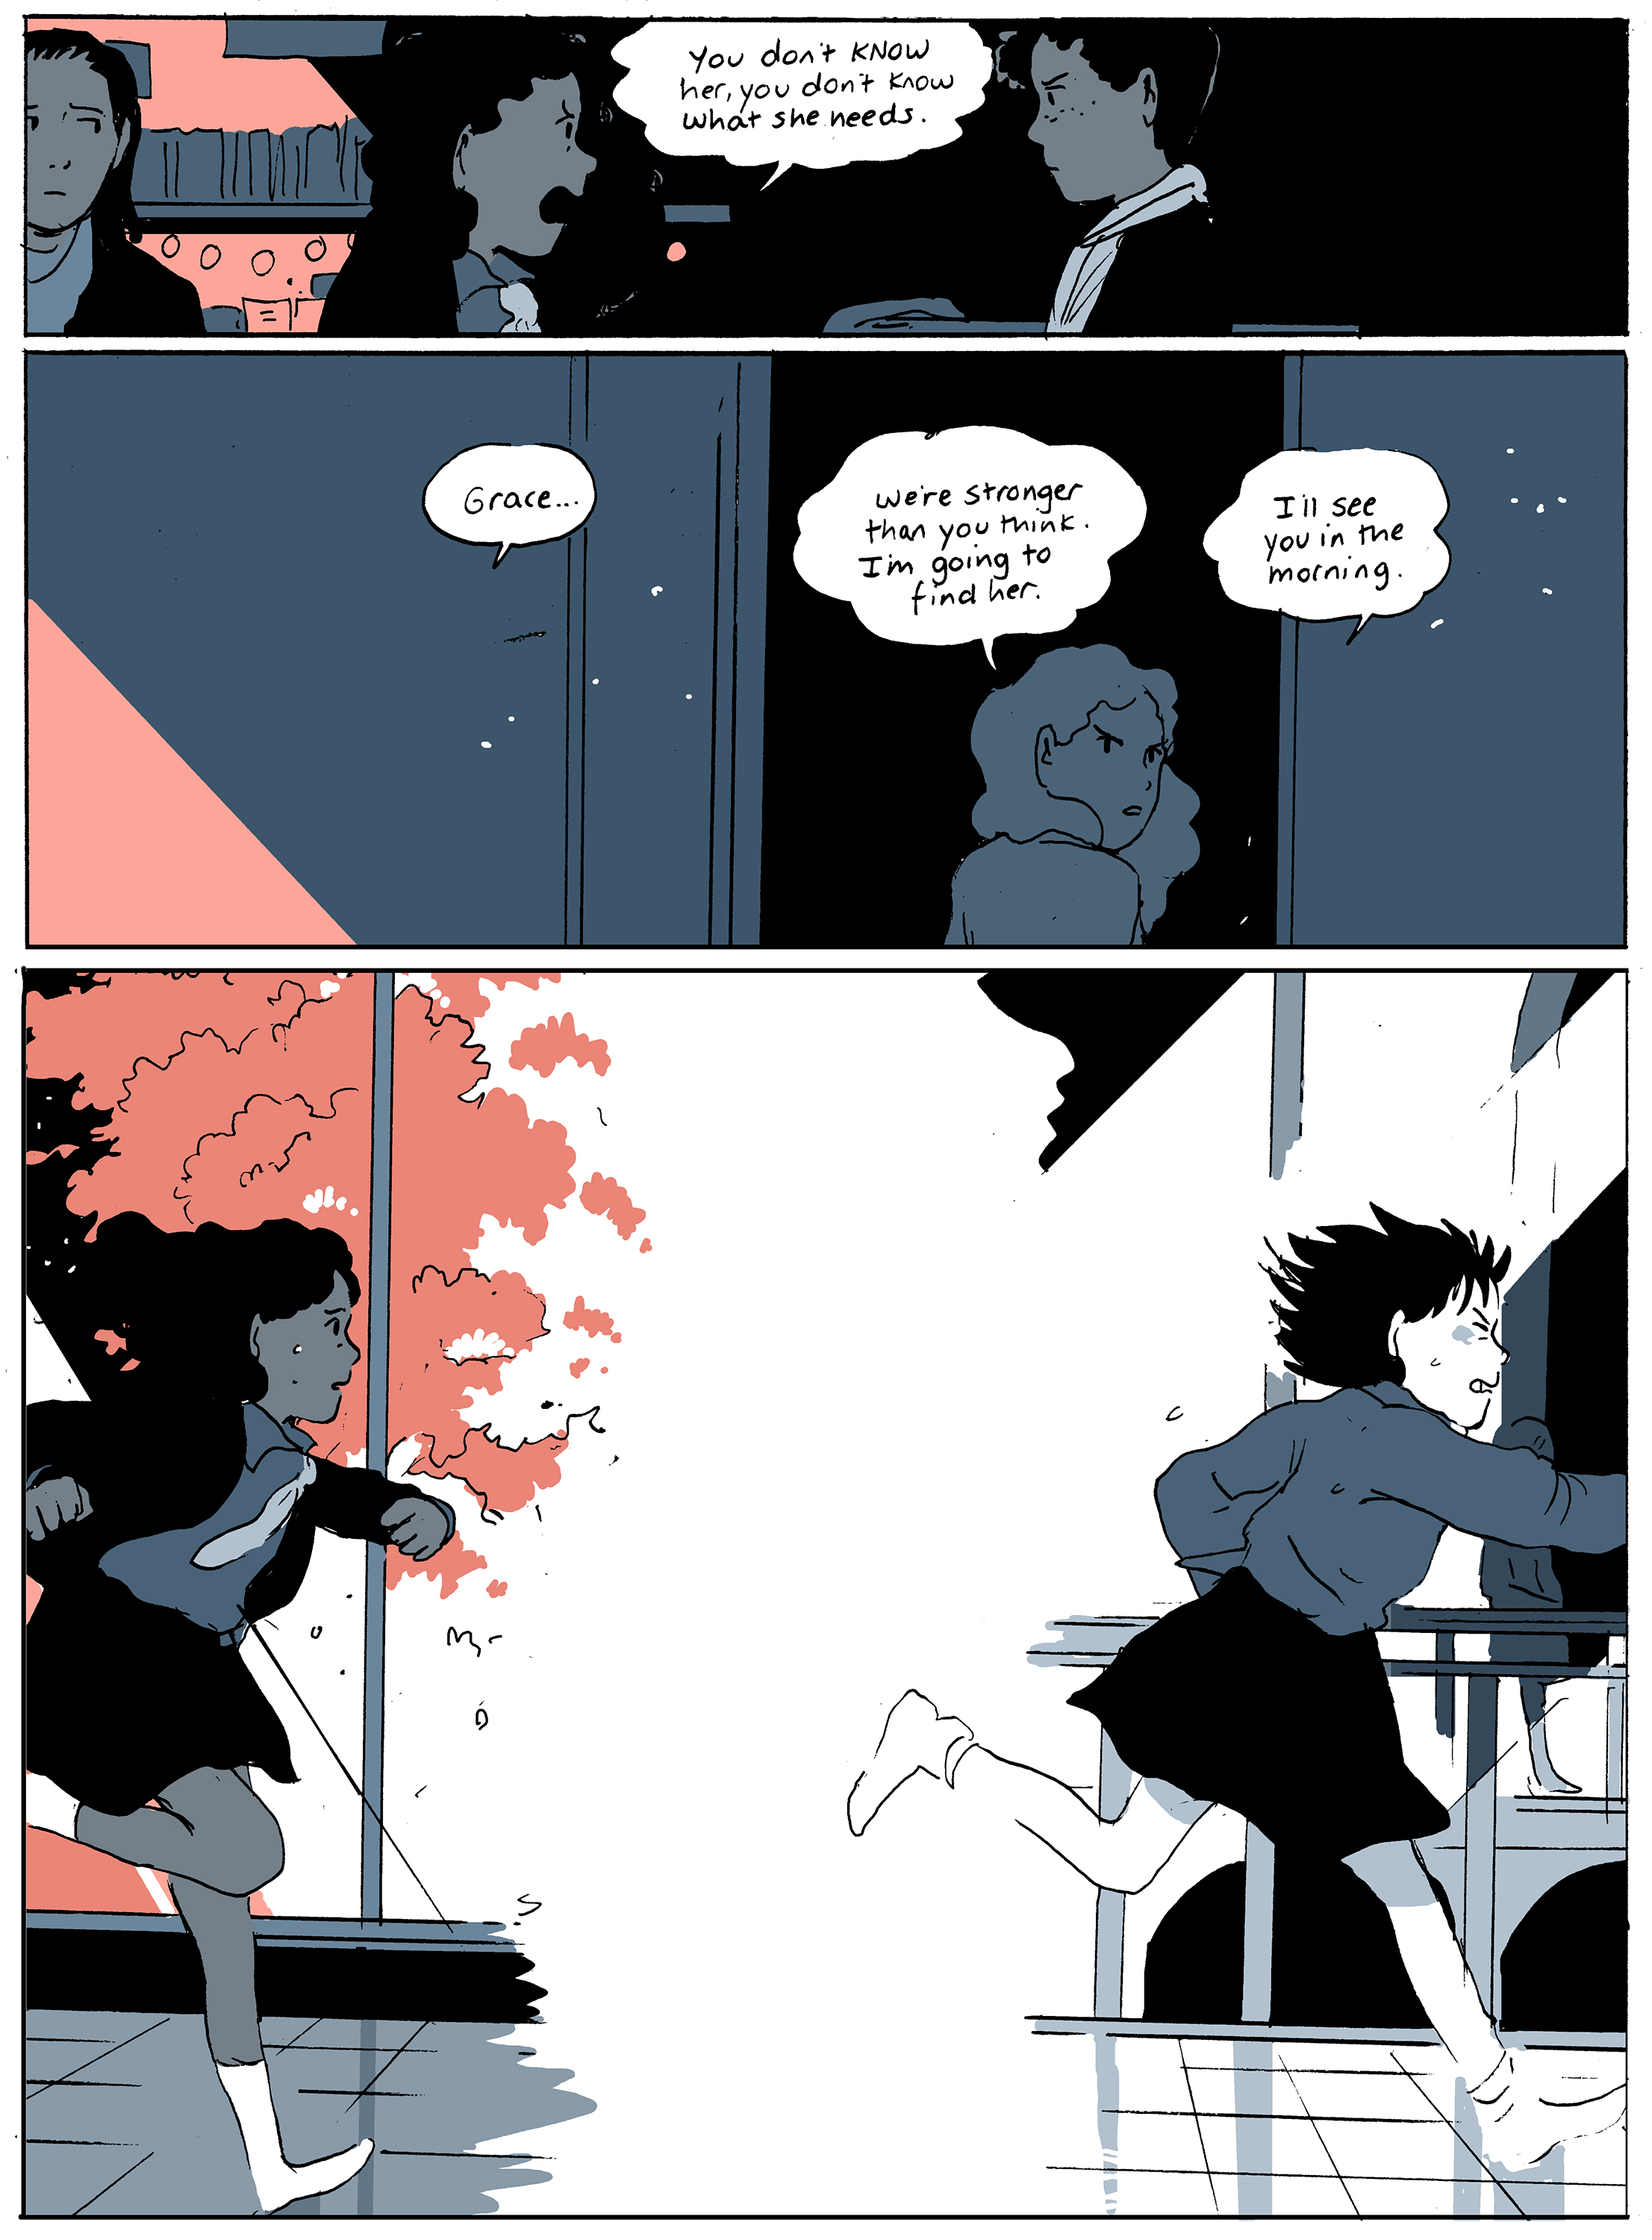 chapter12_page15.jpg